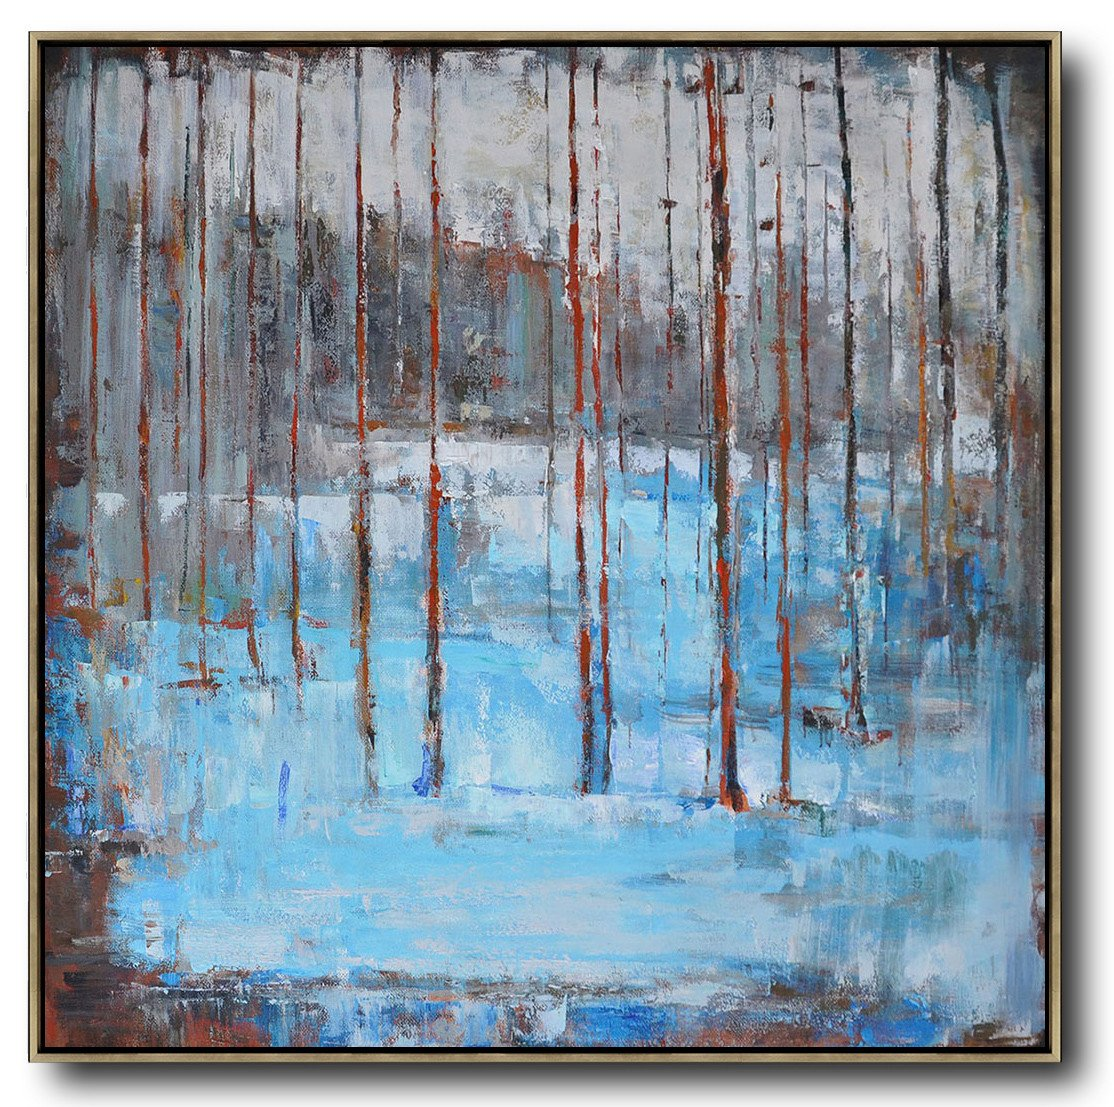 Abstract Painting Extra Large Canvas Art,Abstract Landscape Oil Painting,Oversized Canvas Art,Blue,Grey,Red,White.etc